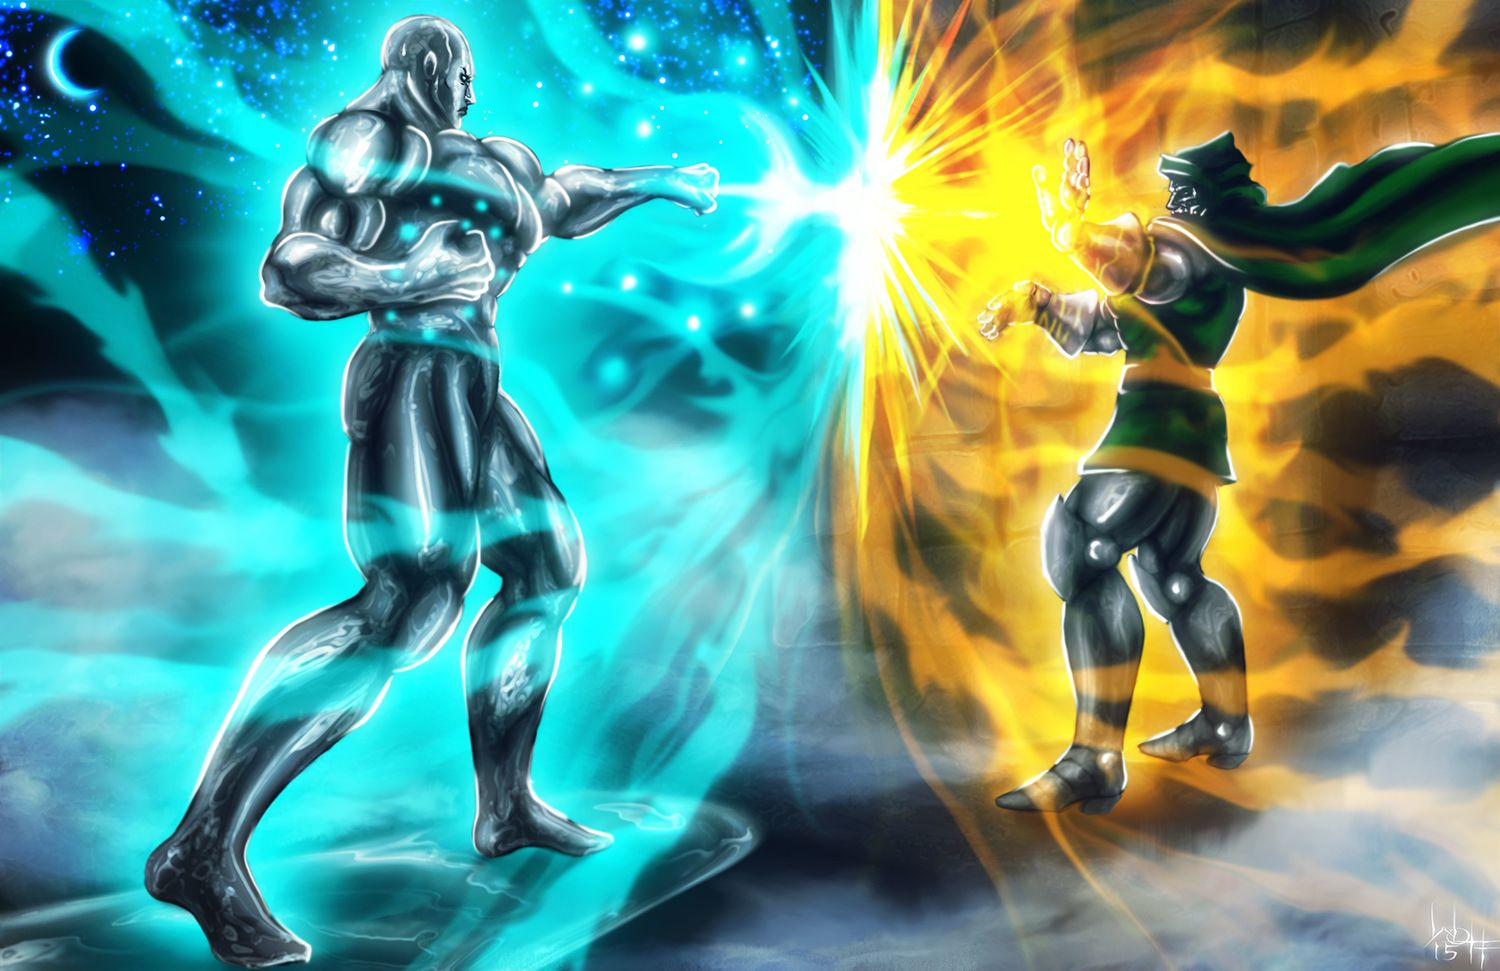 1500x971 Silver Surfer vs Doctor Doom by SirWolfgang on DeviantArt